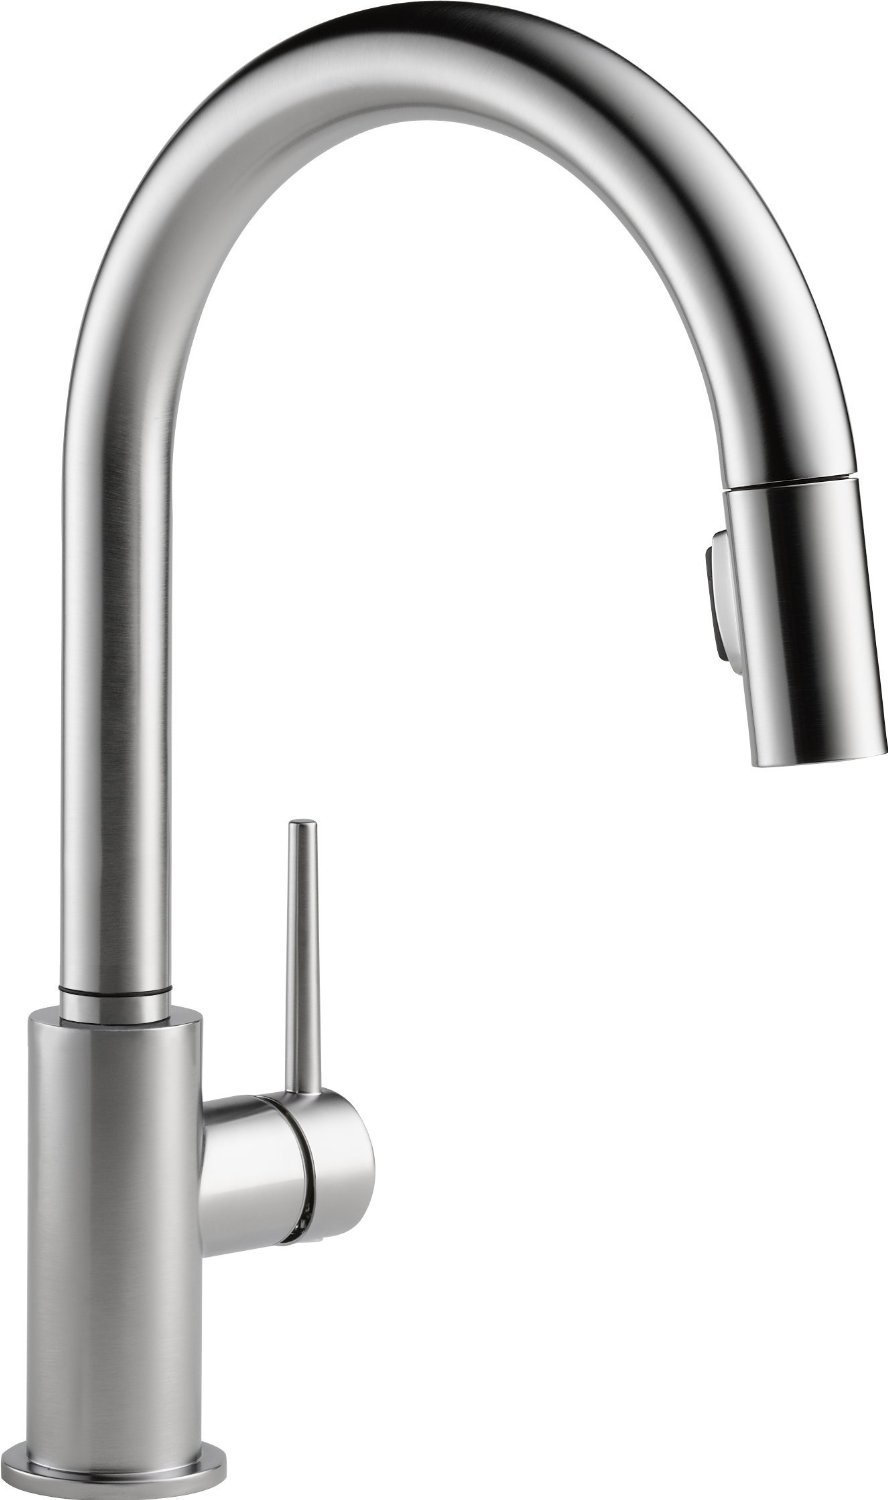 Ratings For Kitchen Faucets Best Kitchen Faucets 2017 Chosen By Customer Ratings